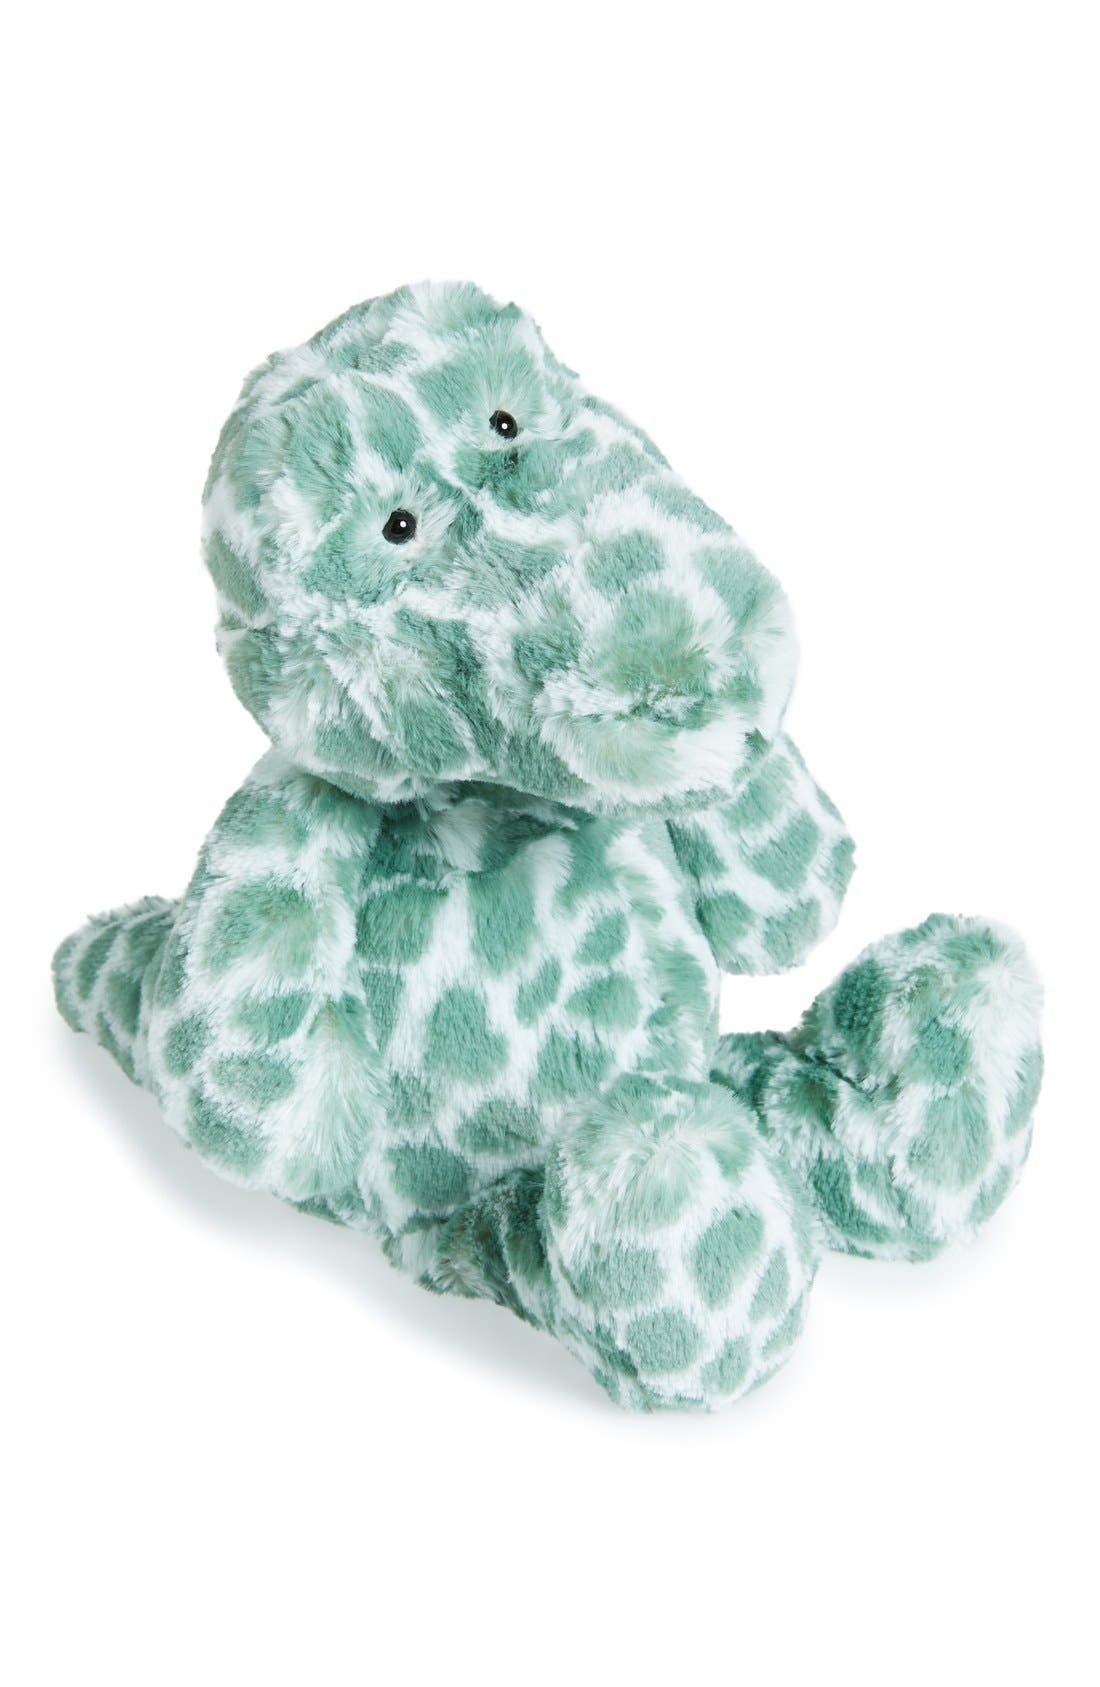 'Dapple Croc' Stuffed Animal,                             Alternate thumbnail 2, color,                             440